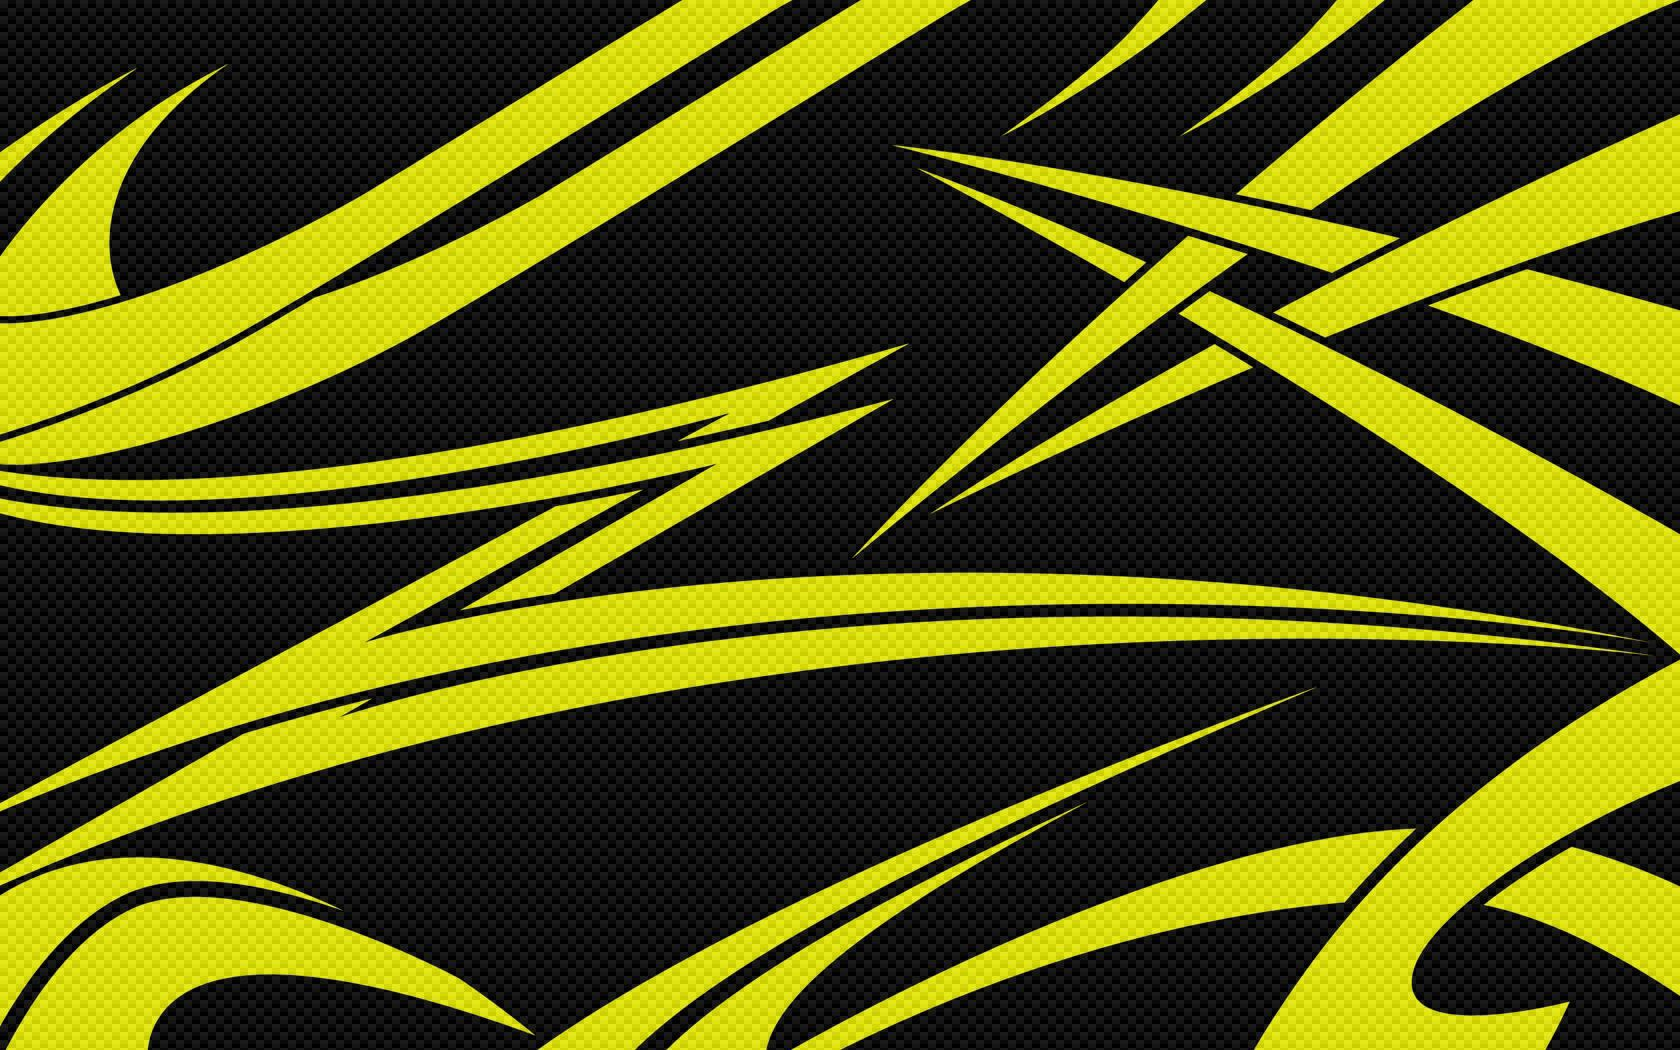 104748 free download Black wallpapers for phone, Vector, Lines, Spearhead, Prick Black images and screensavers for mobile